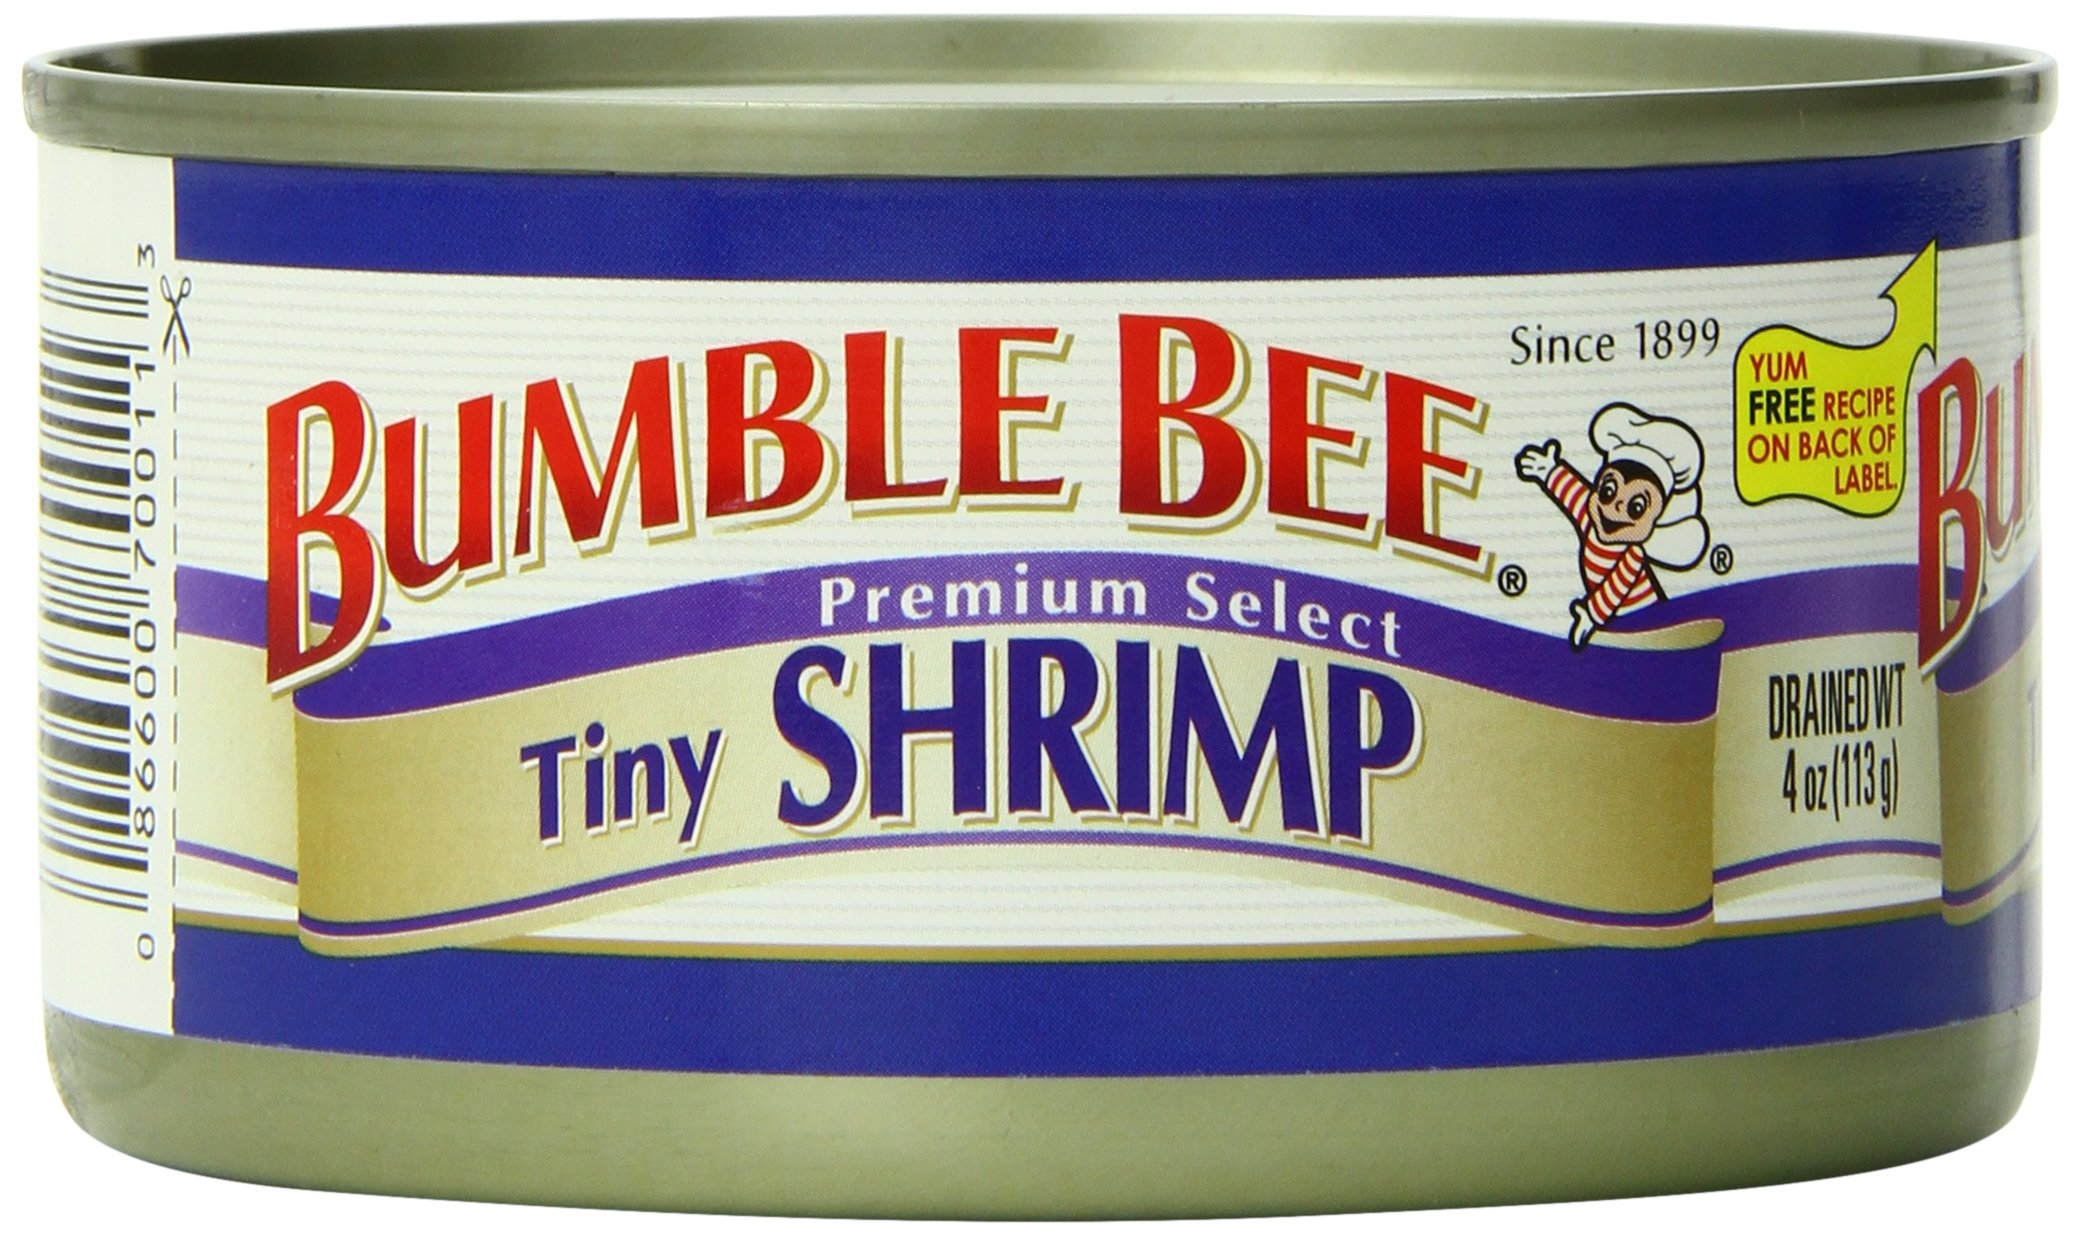 BUMBLE BEE Tiny Shrimp, High Protein Food, Keto Food and Snacks, Gluten Free Food, High Protein Snacks, Bulk Canned Shrimp, 4 Ounce Cans (Pack of 12) by Bumble Bee